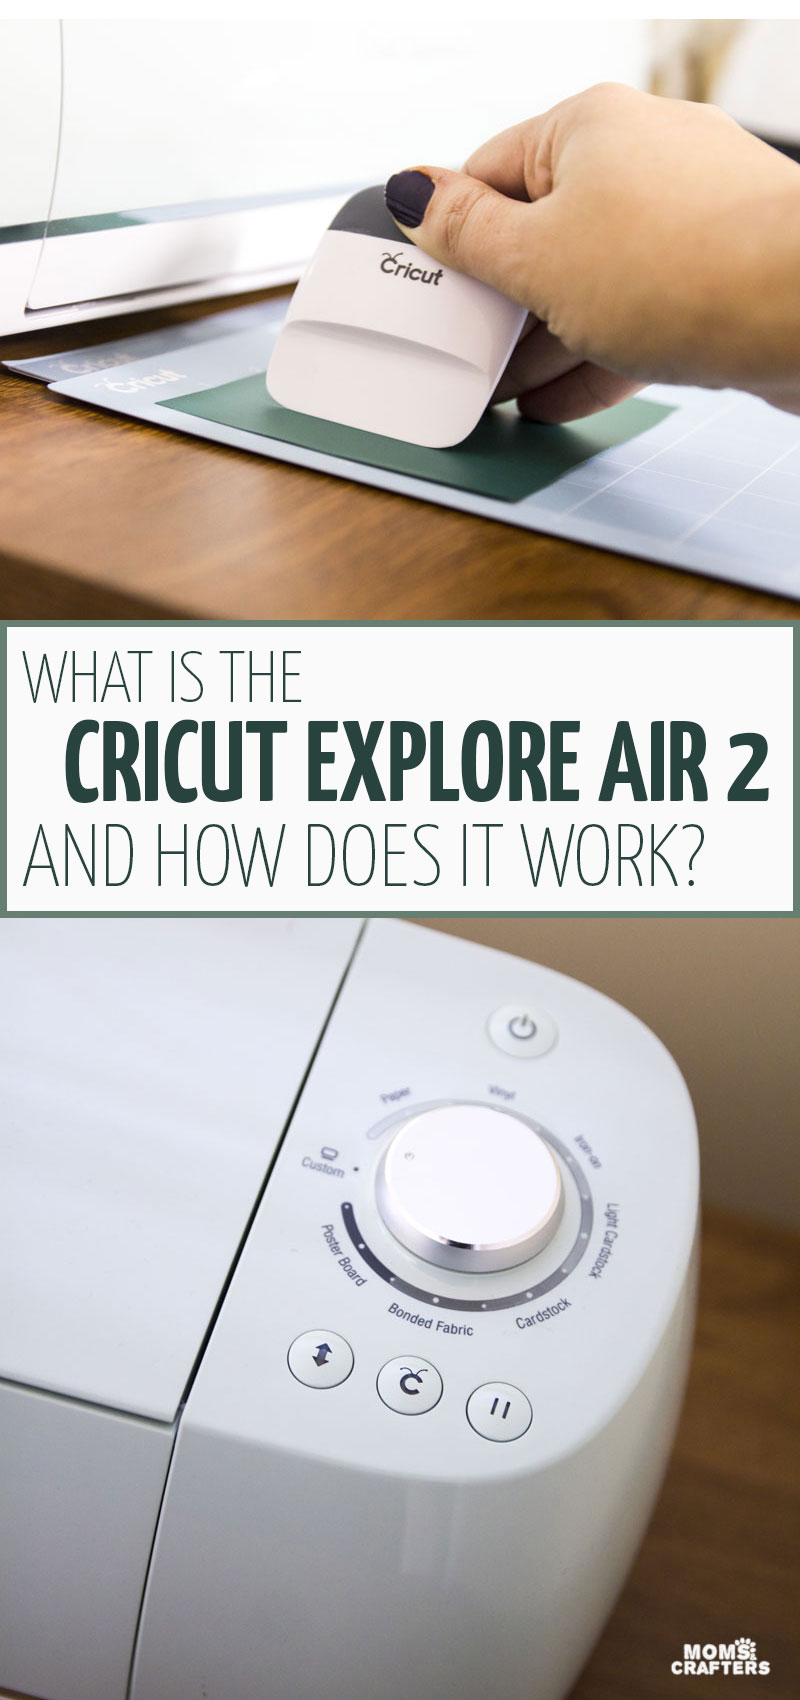 What is the cricut explore air 2 and how does it work? Which materials can you cut with a cricut? What are some beginner projects to make with the cricut? Learn how to use a cricut machine in this comprehensive cricut explore air 2 review.